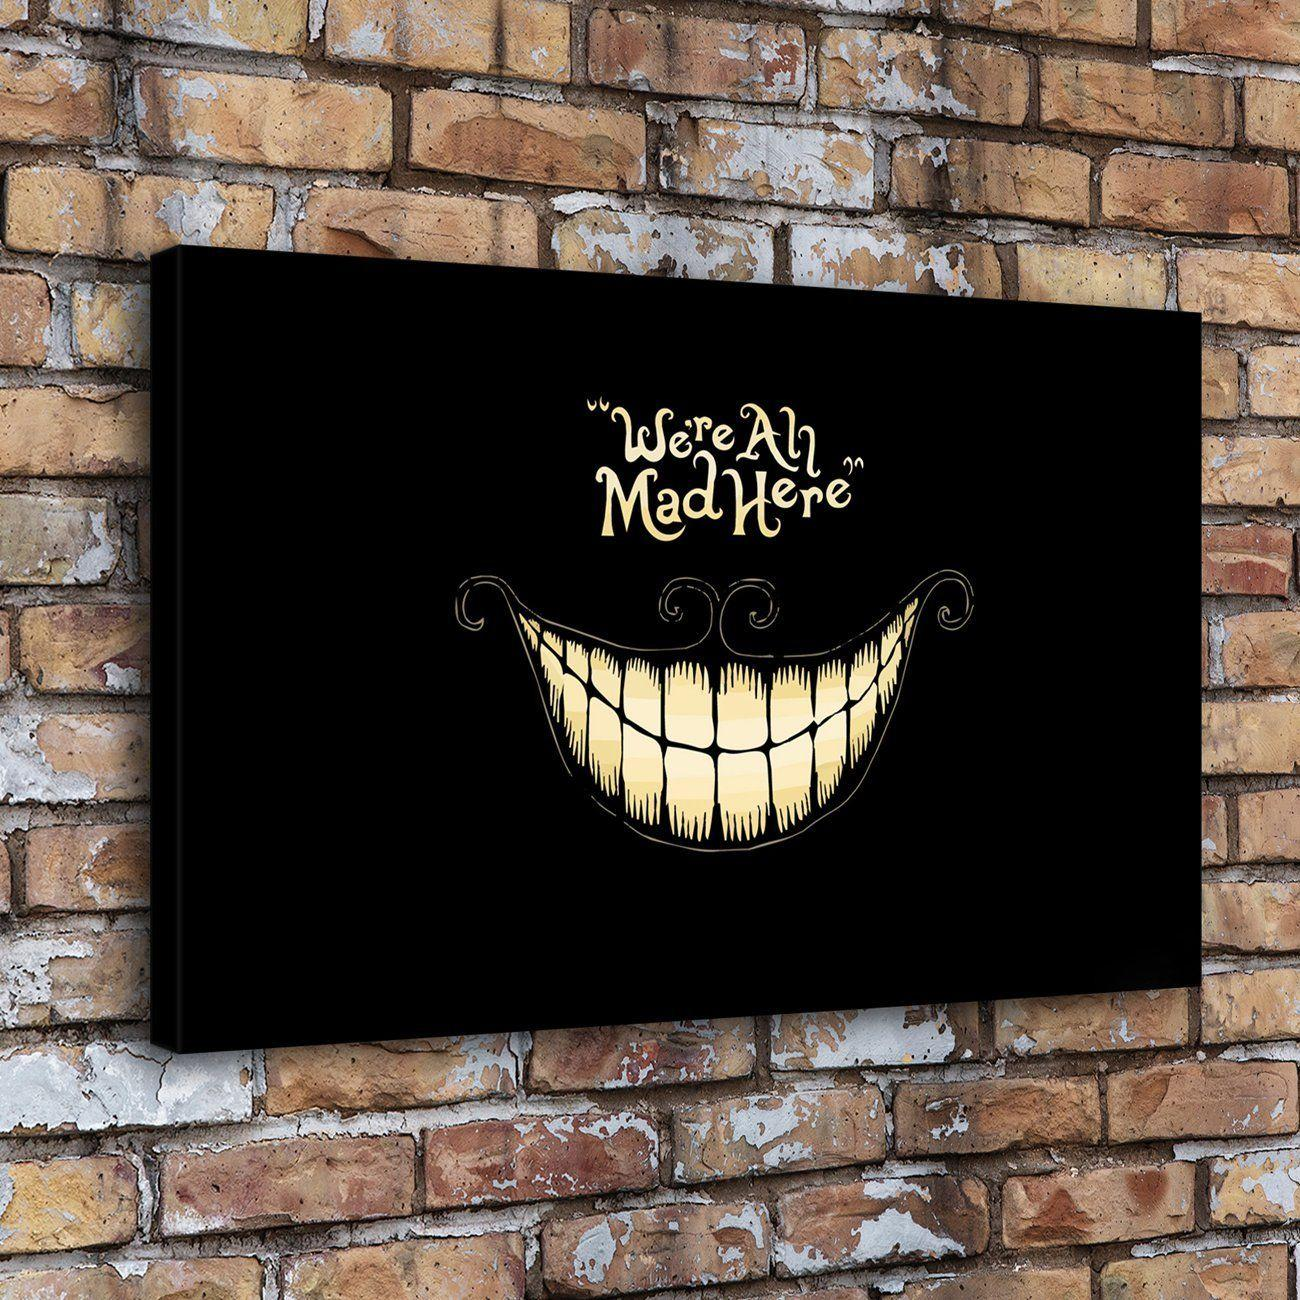 2019 Alice In WonderlandHome Decor HD Printed Modern Art Painting On Canvas Unframed Framed From Xiaozhu1214 598